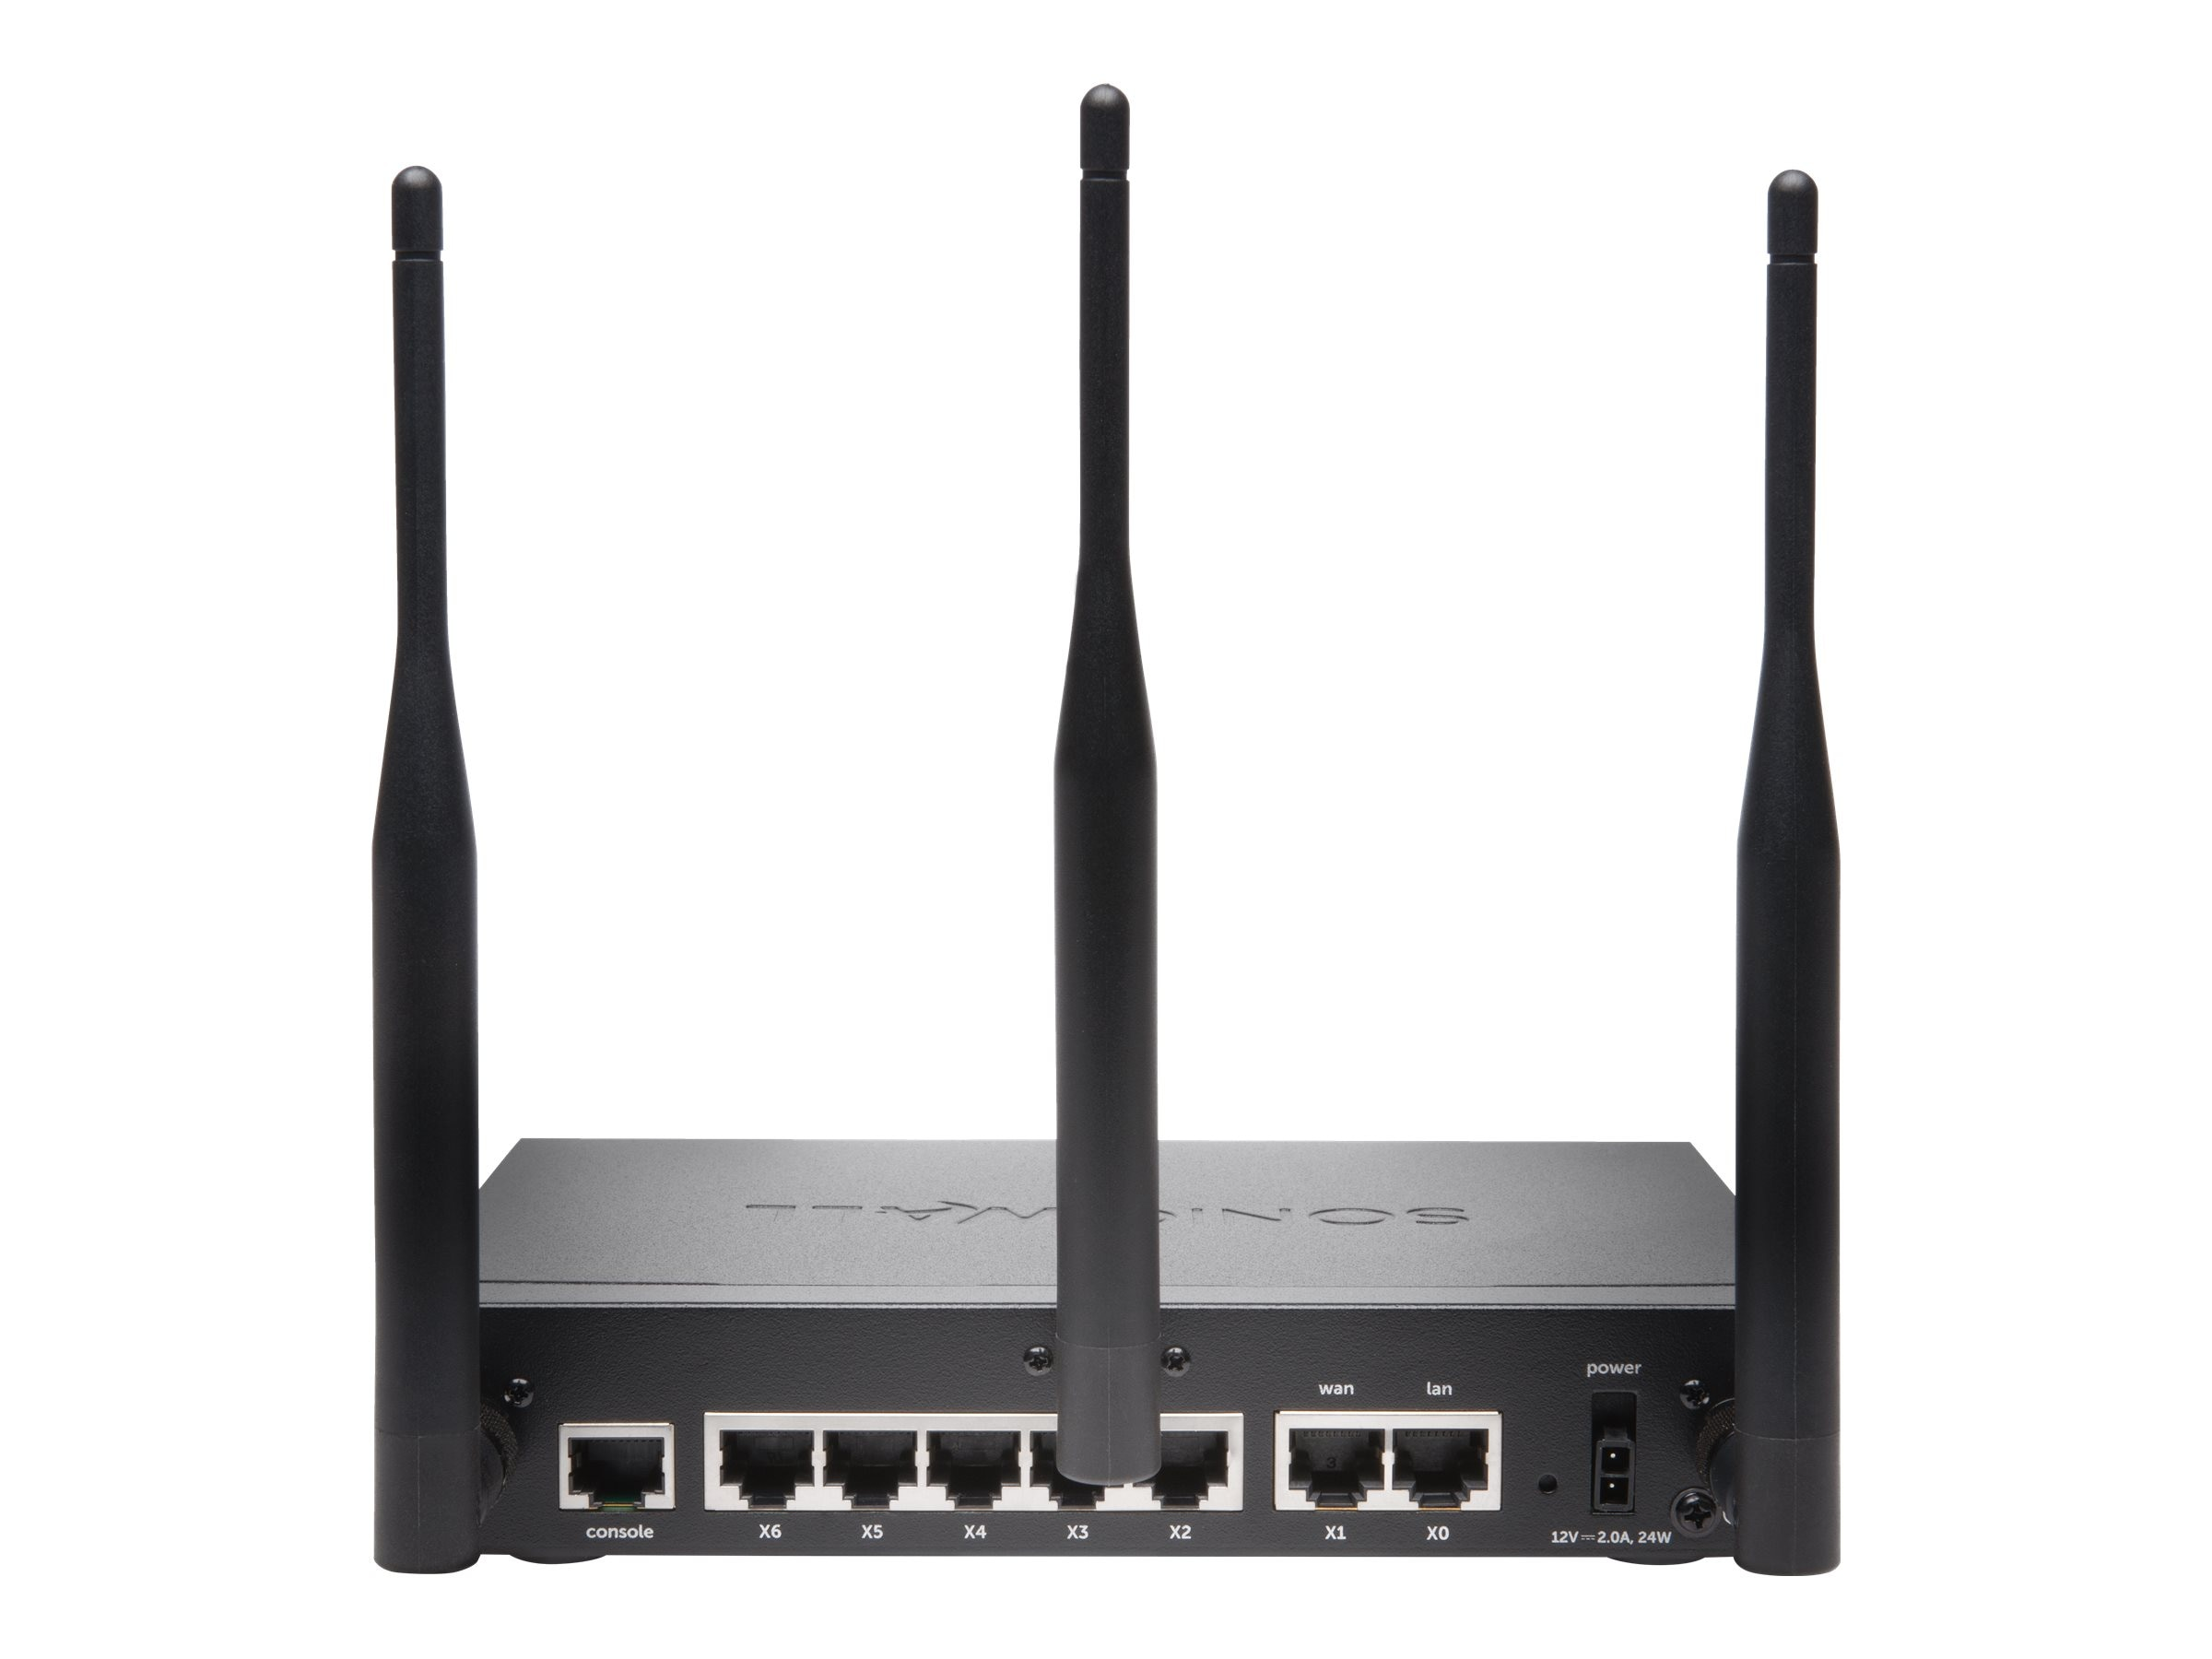 SonicWALL 01-SSC-0214 Image 4